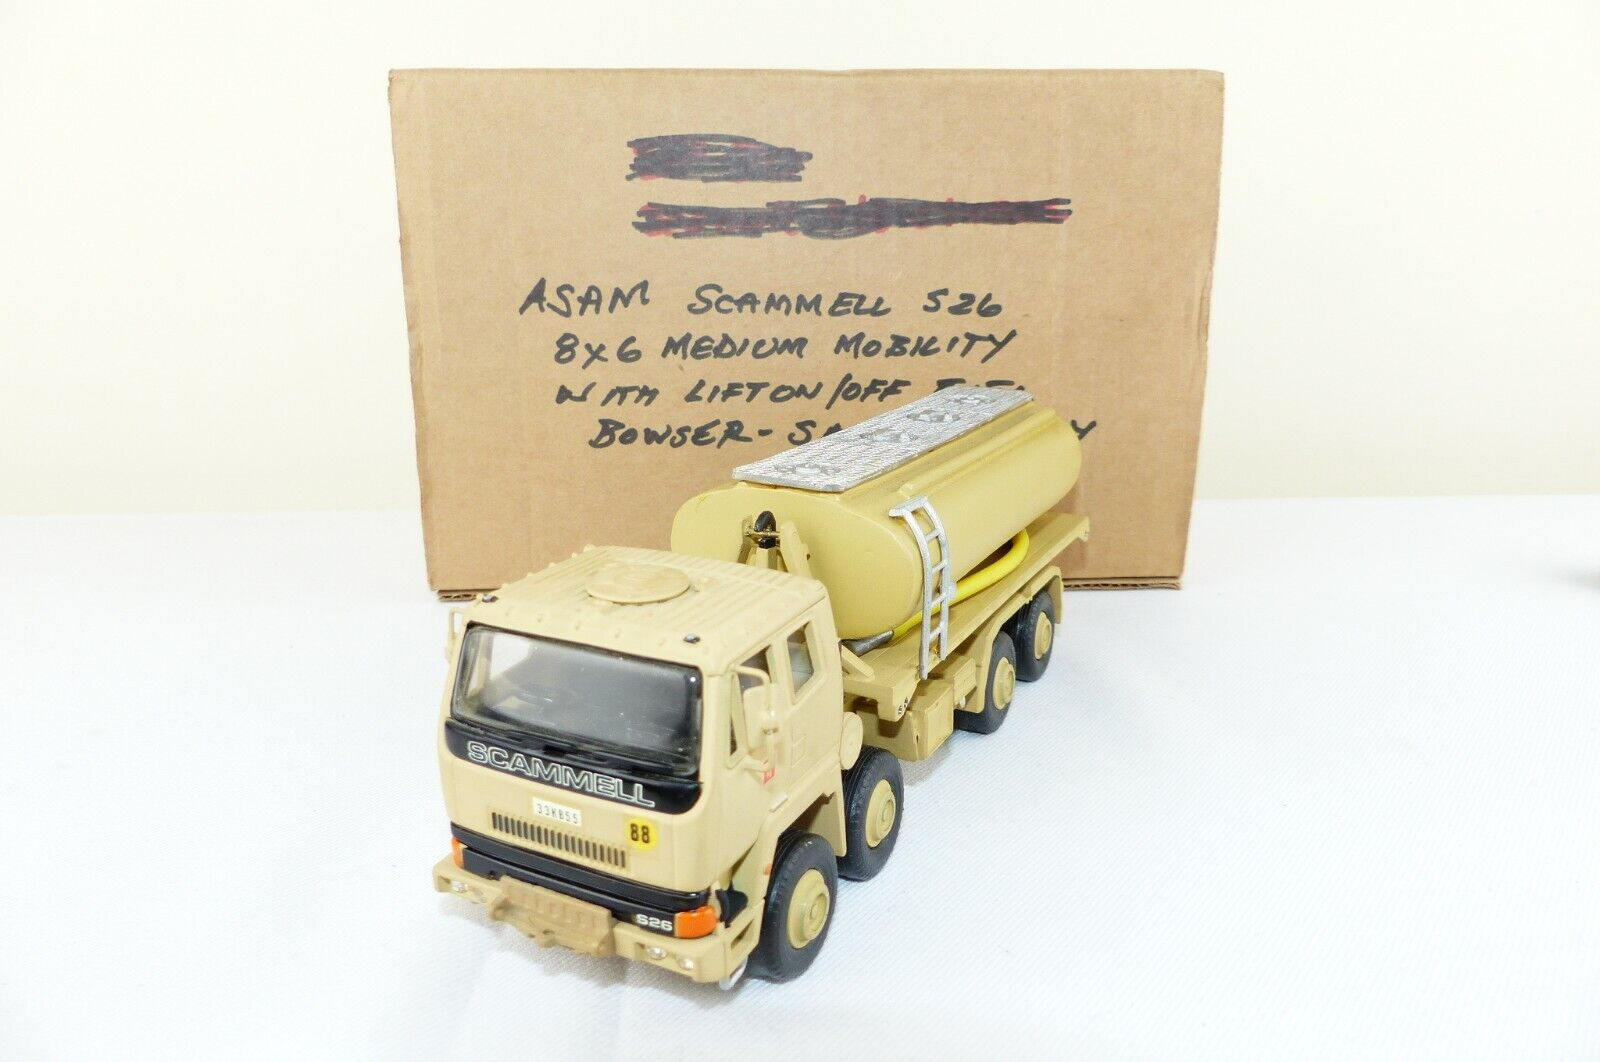 Asam modello della Scammell 8X6 Medio LIFT ON OFF CARBURANTE Bowser VNMB dell'esercito britannico